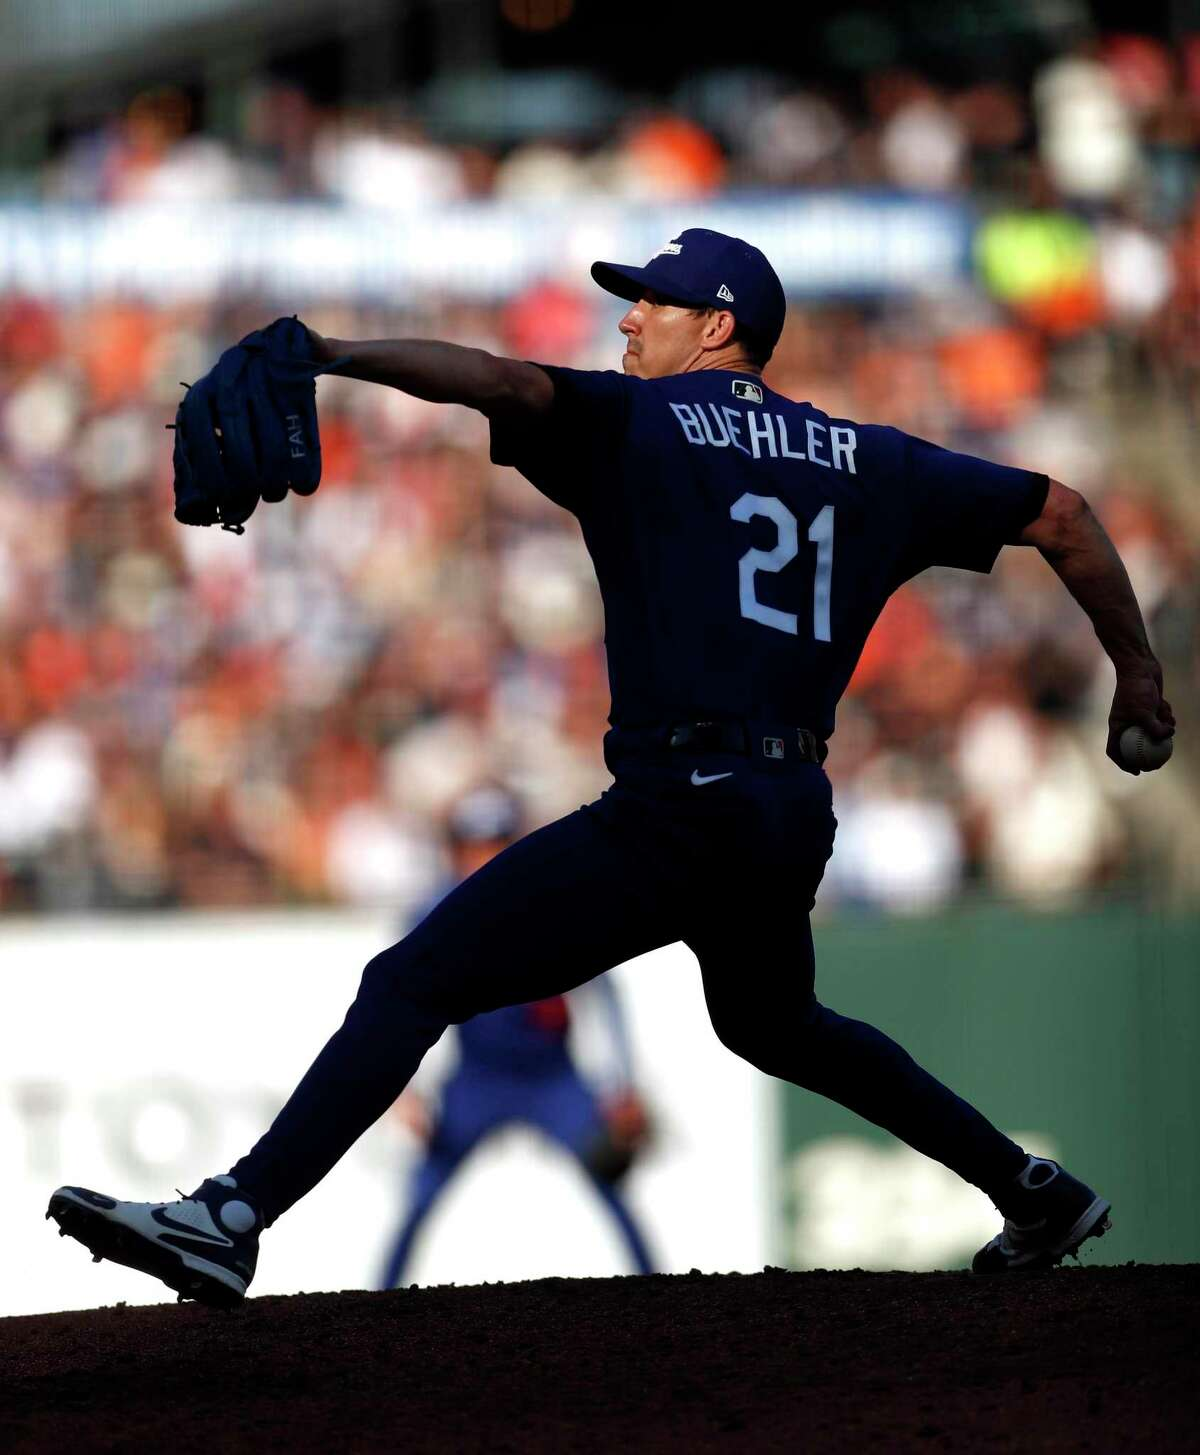 Los Angeles Dodgers' Walker Buehler pitches in 3rd inning against San Francisco Giants during MLB game at Oracle Park in San Francisco, Calif., on Sunday, September 5, 2021.